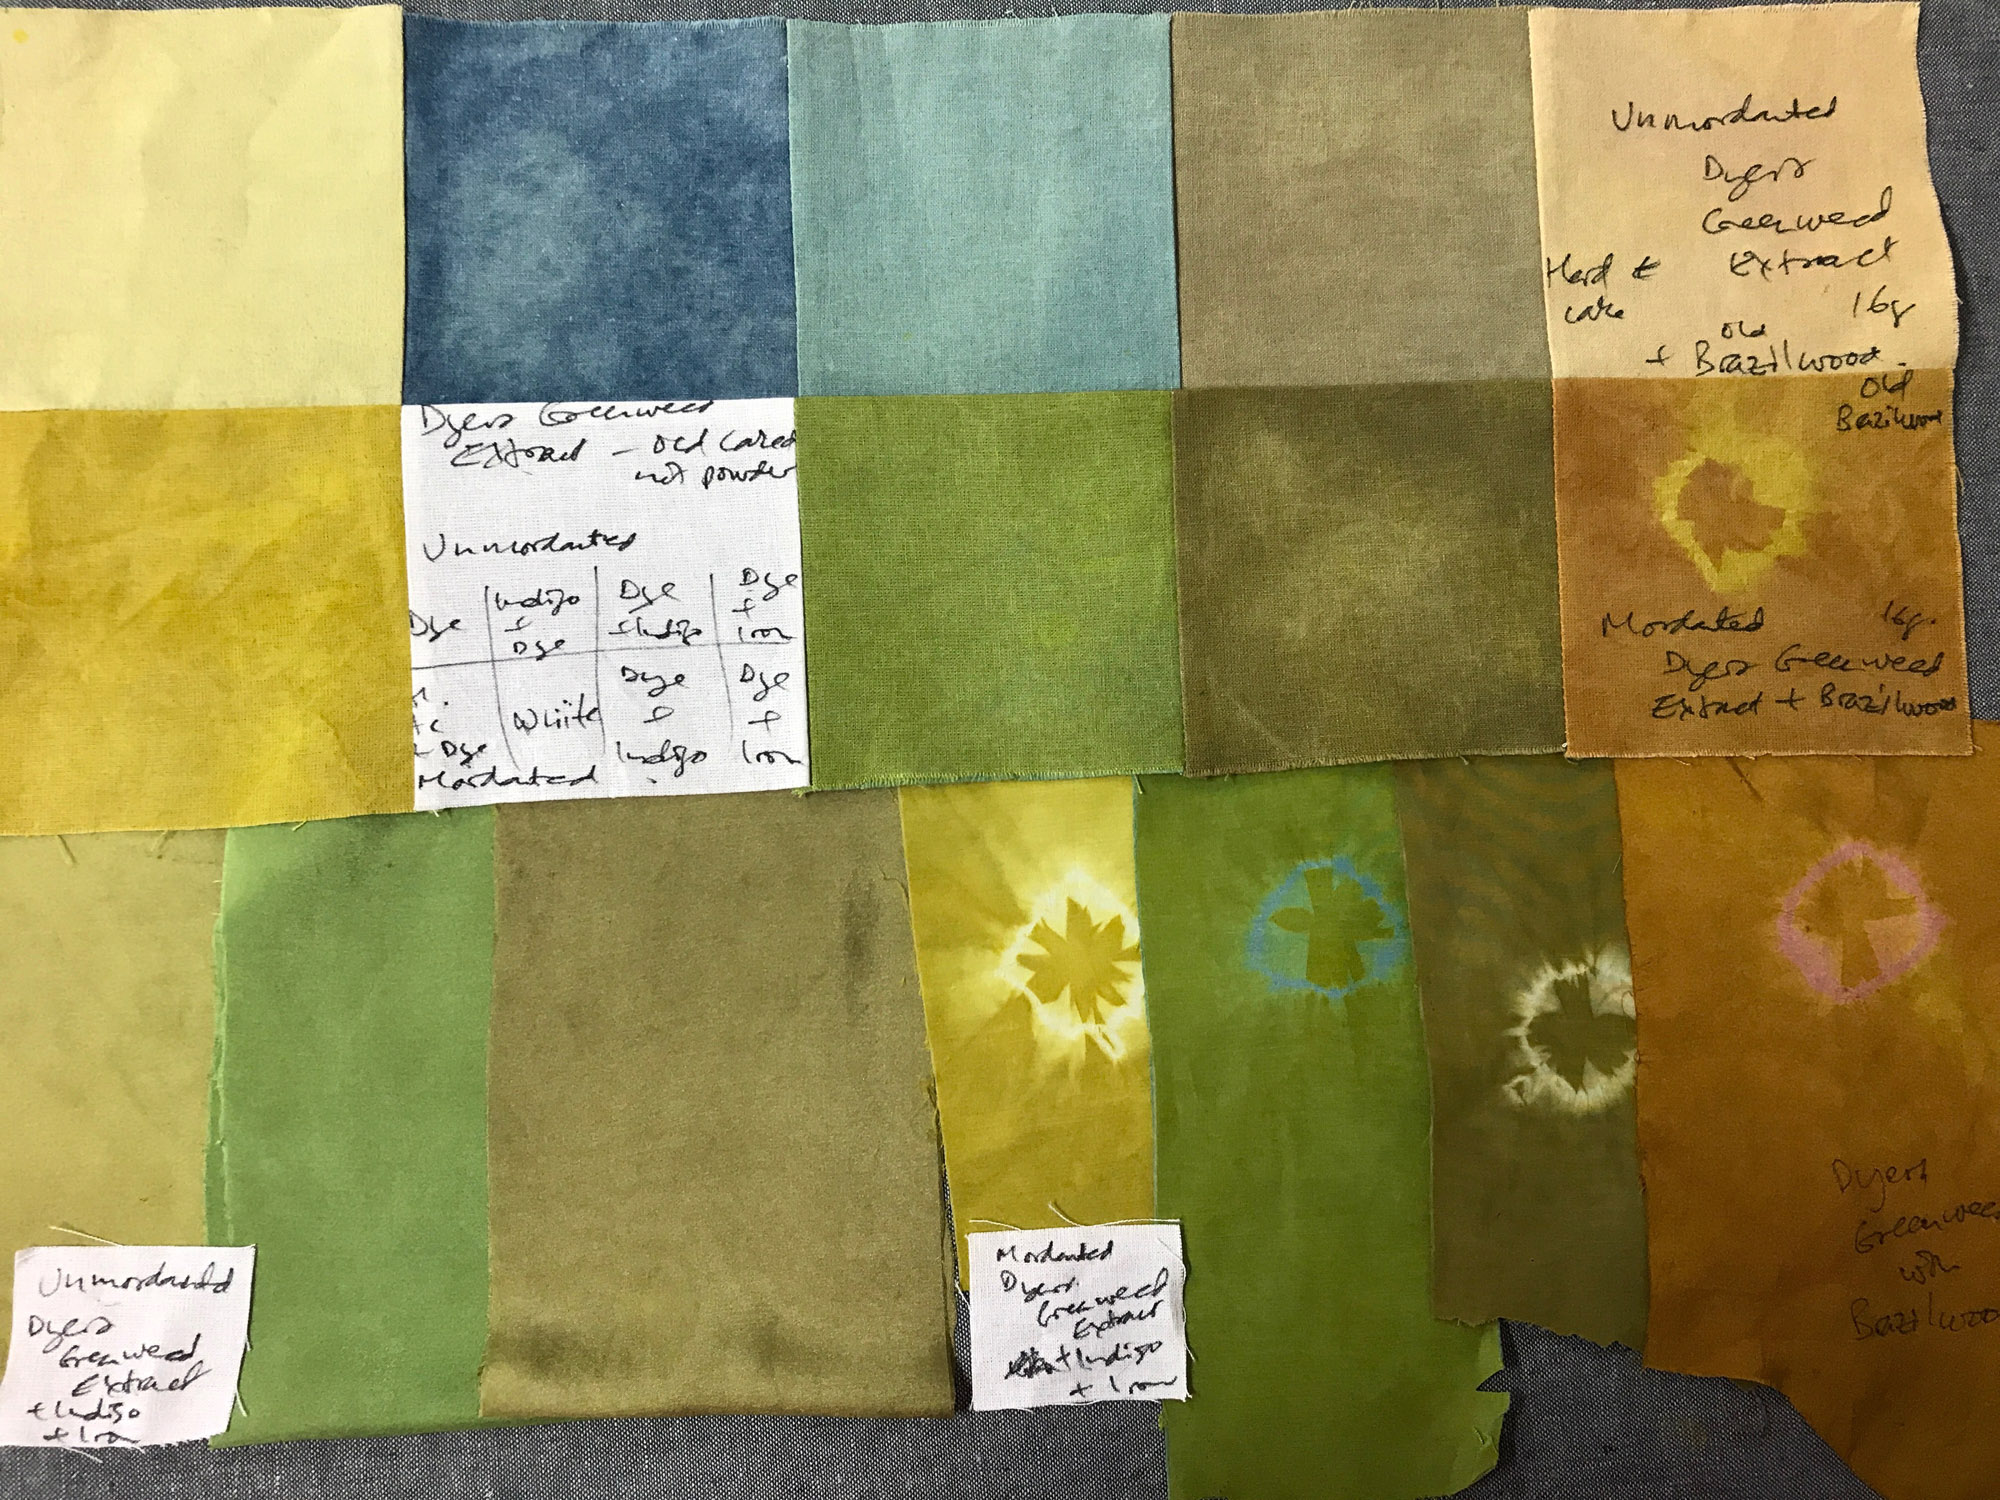 Dyers Greenweed dyed samples on silk and cotton